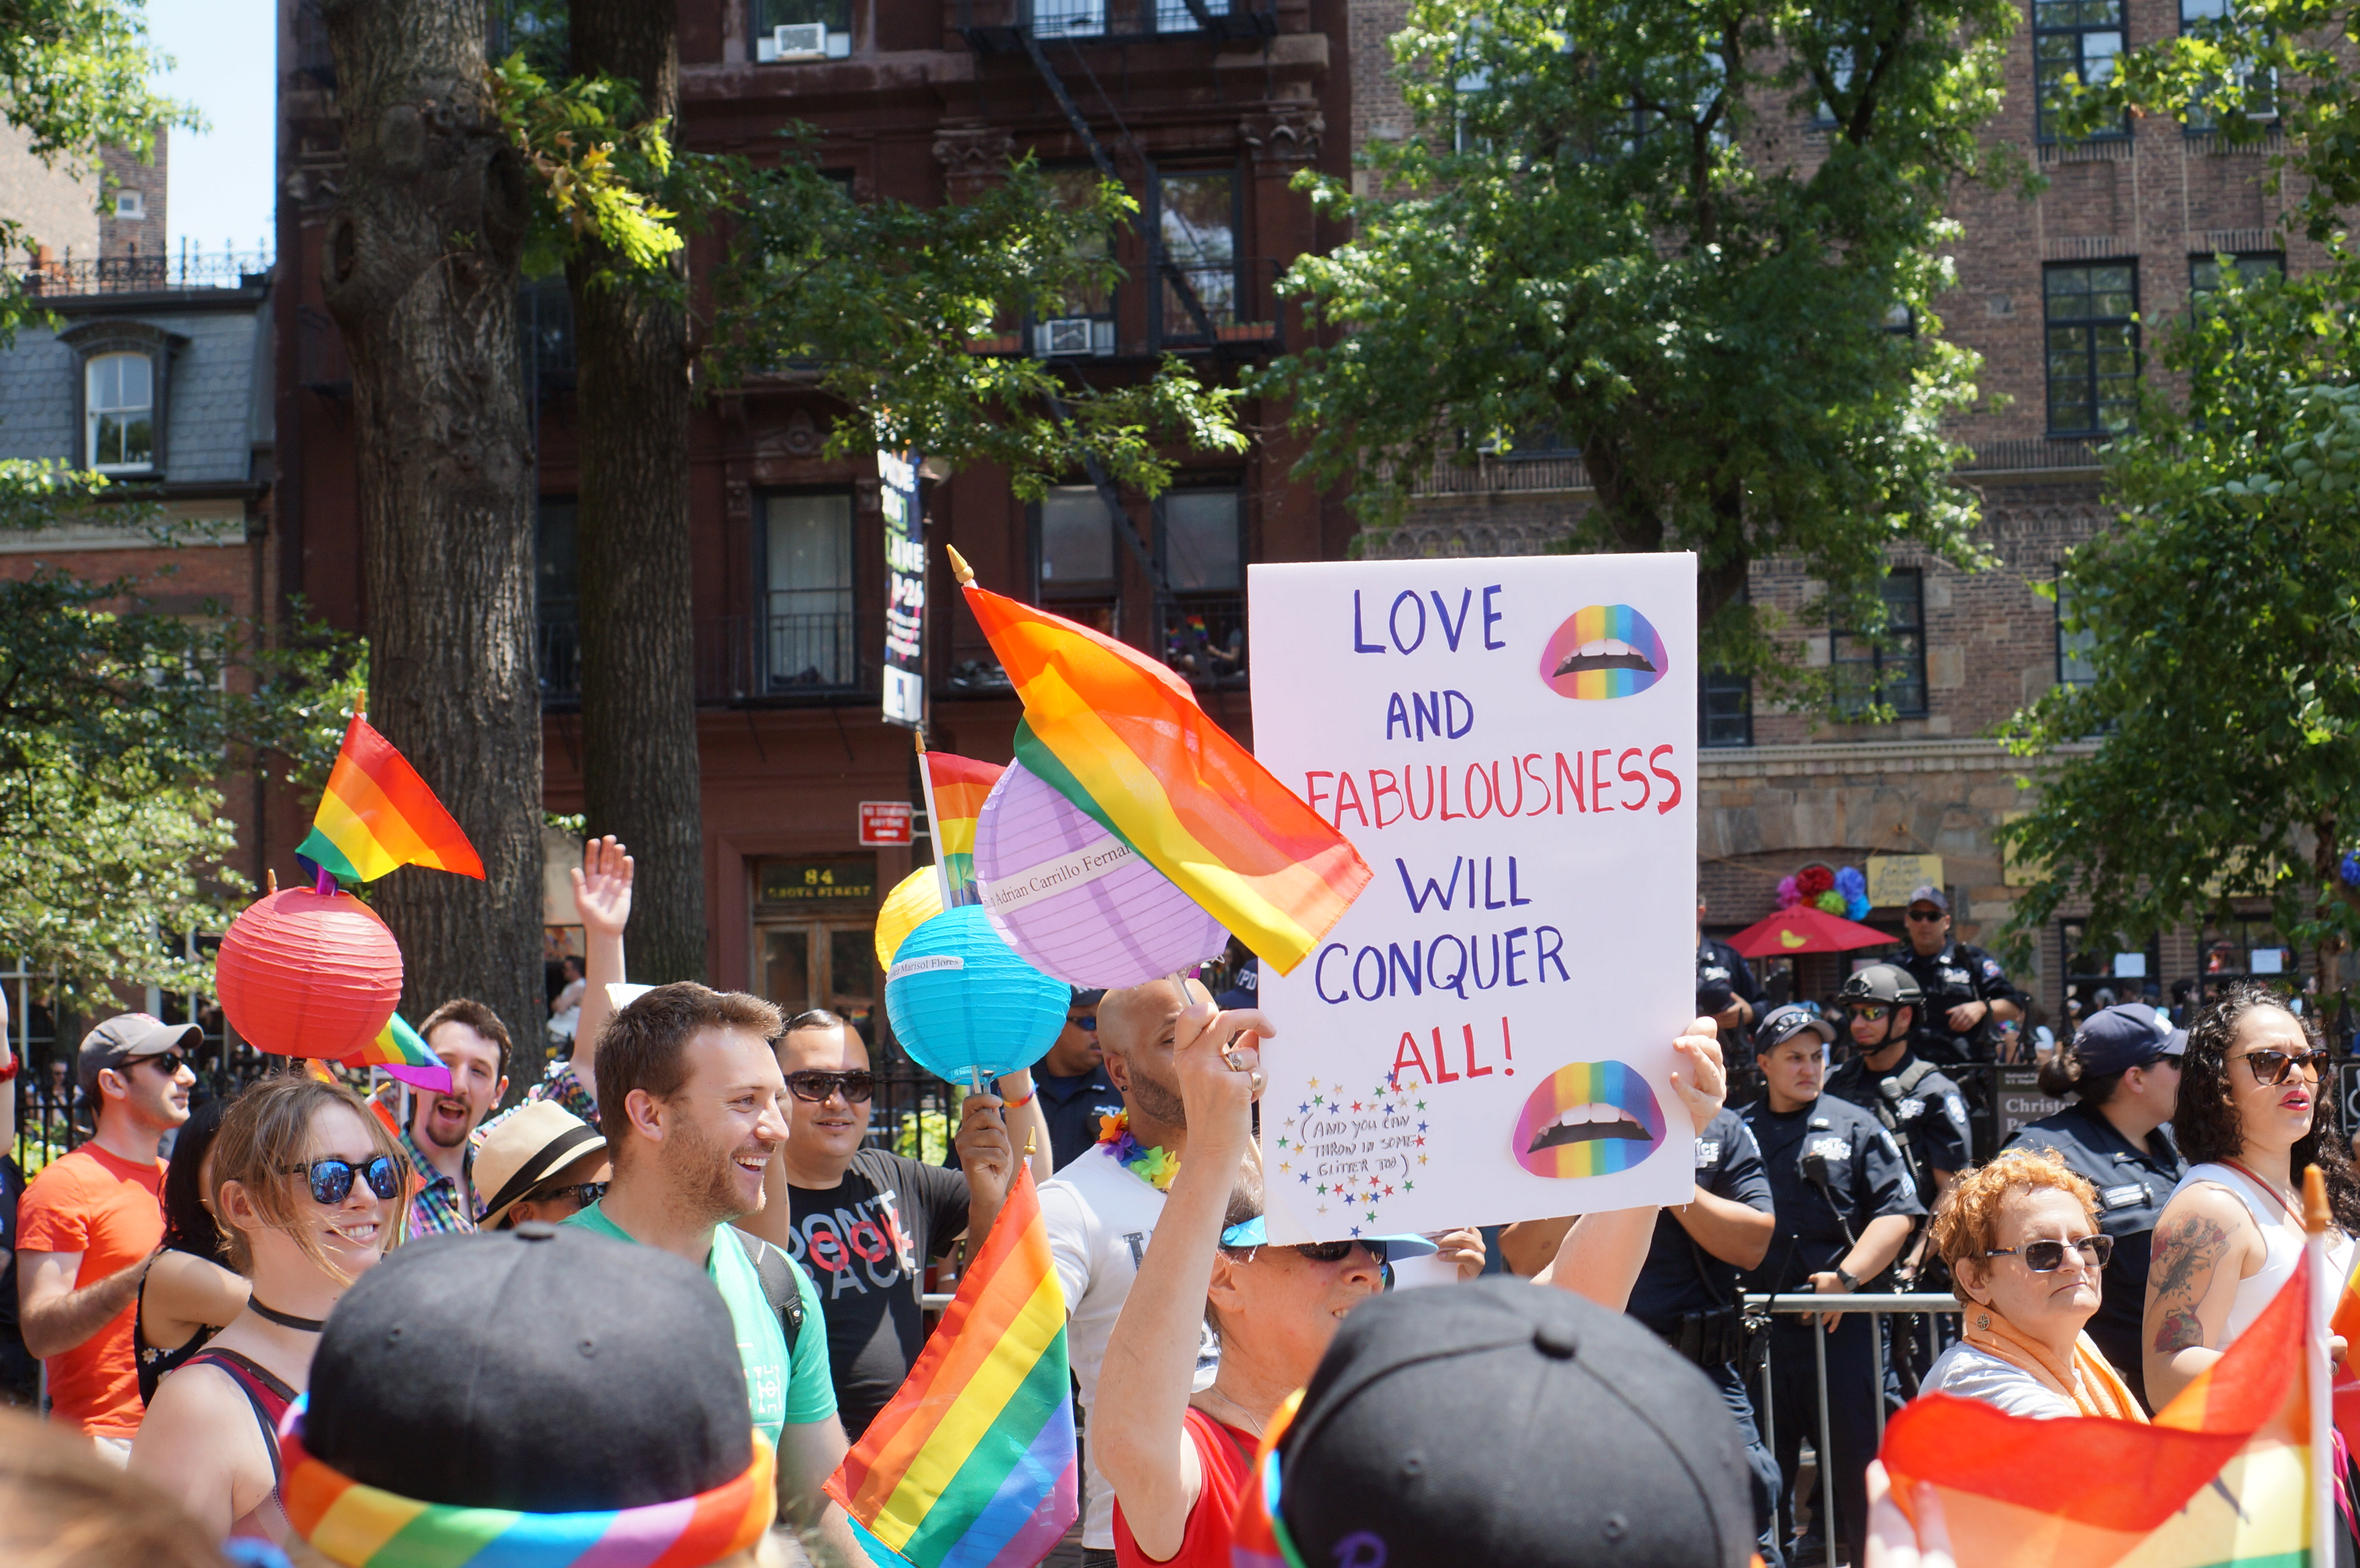 Love and Fabulousness Will Conquer All